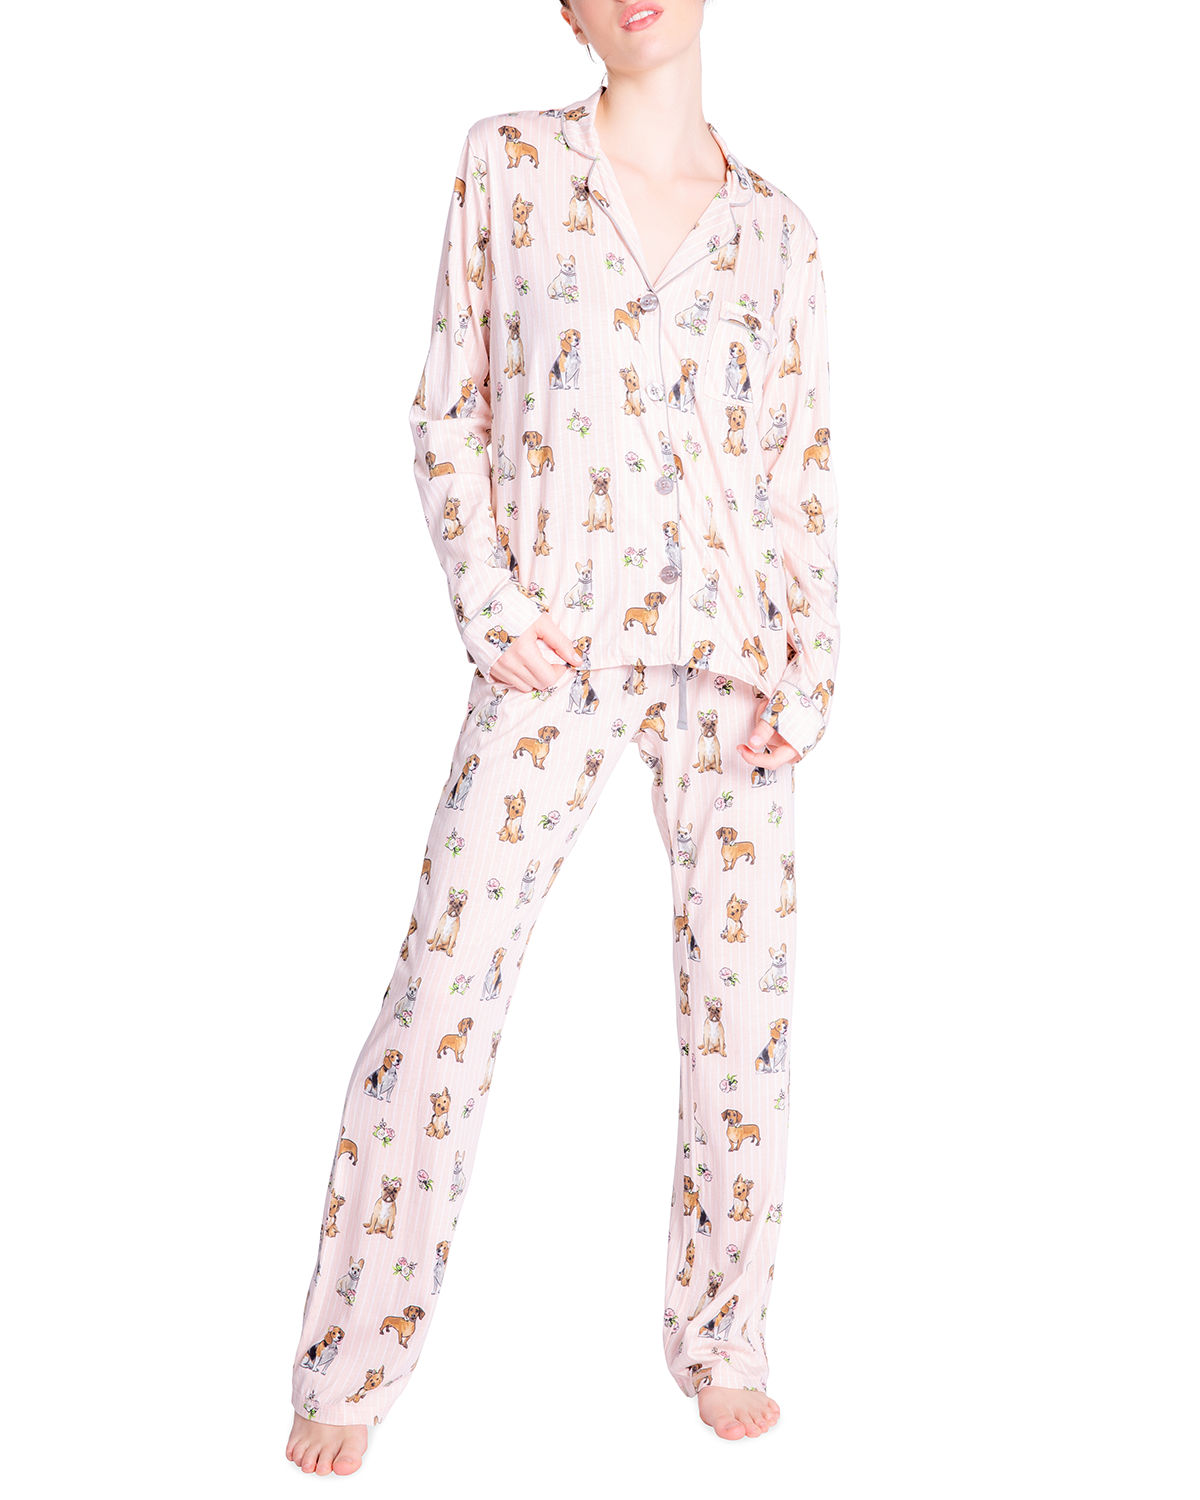 Pj Salvage NOVELTY-PRINT JERSEY PAJAMA SET